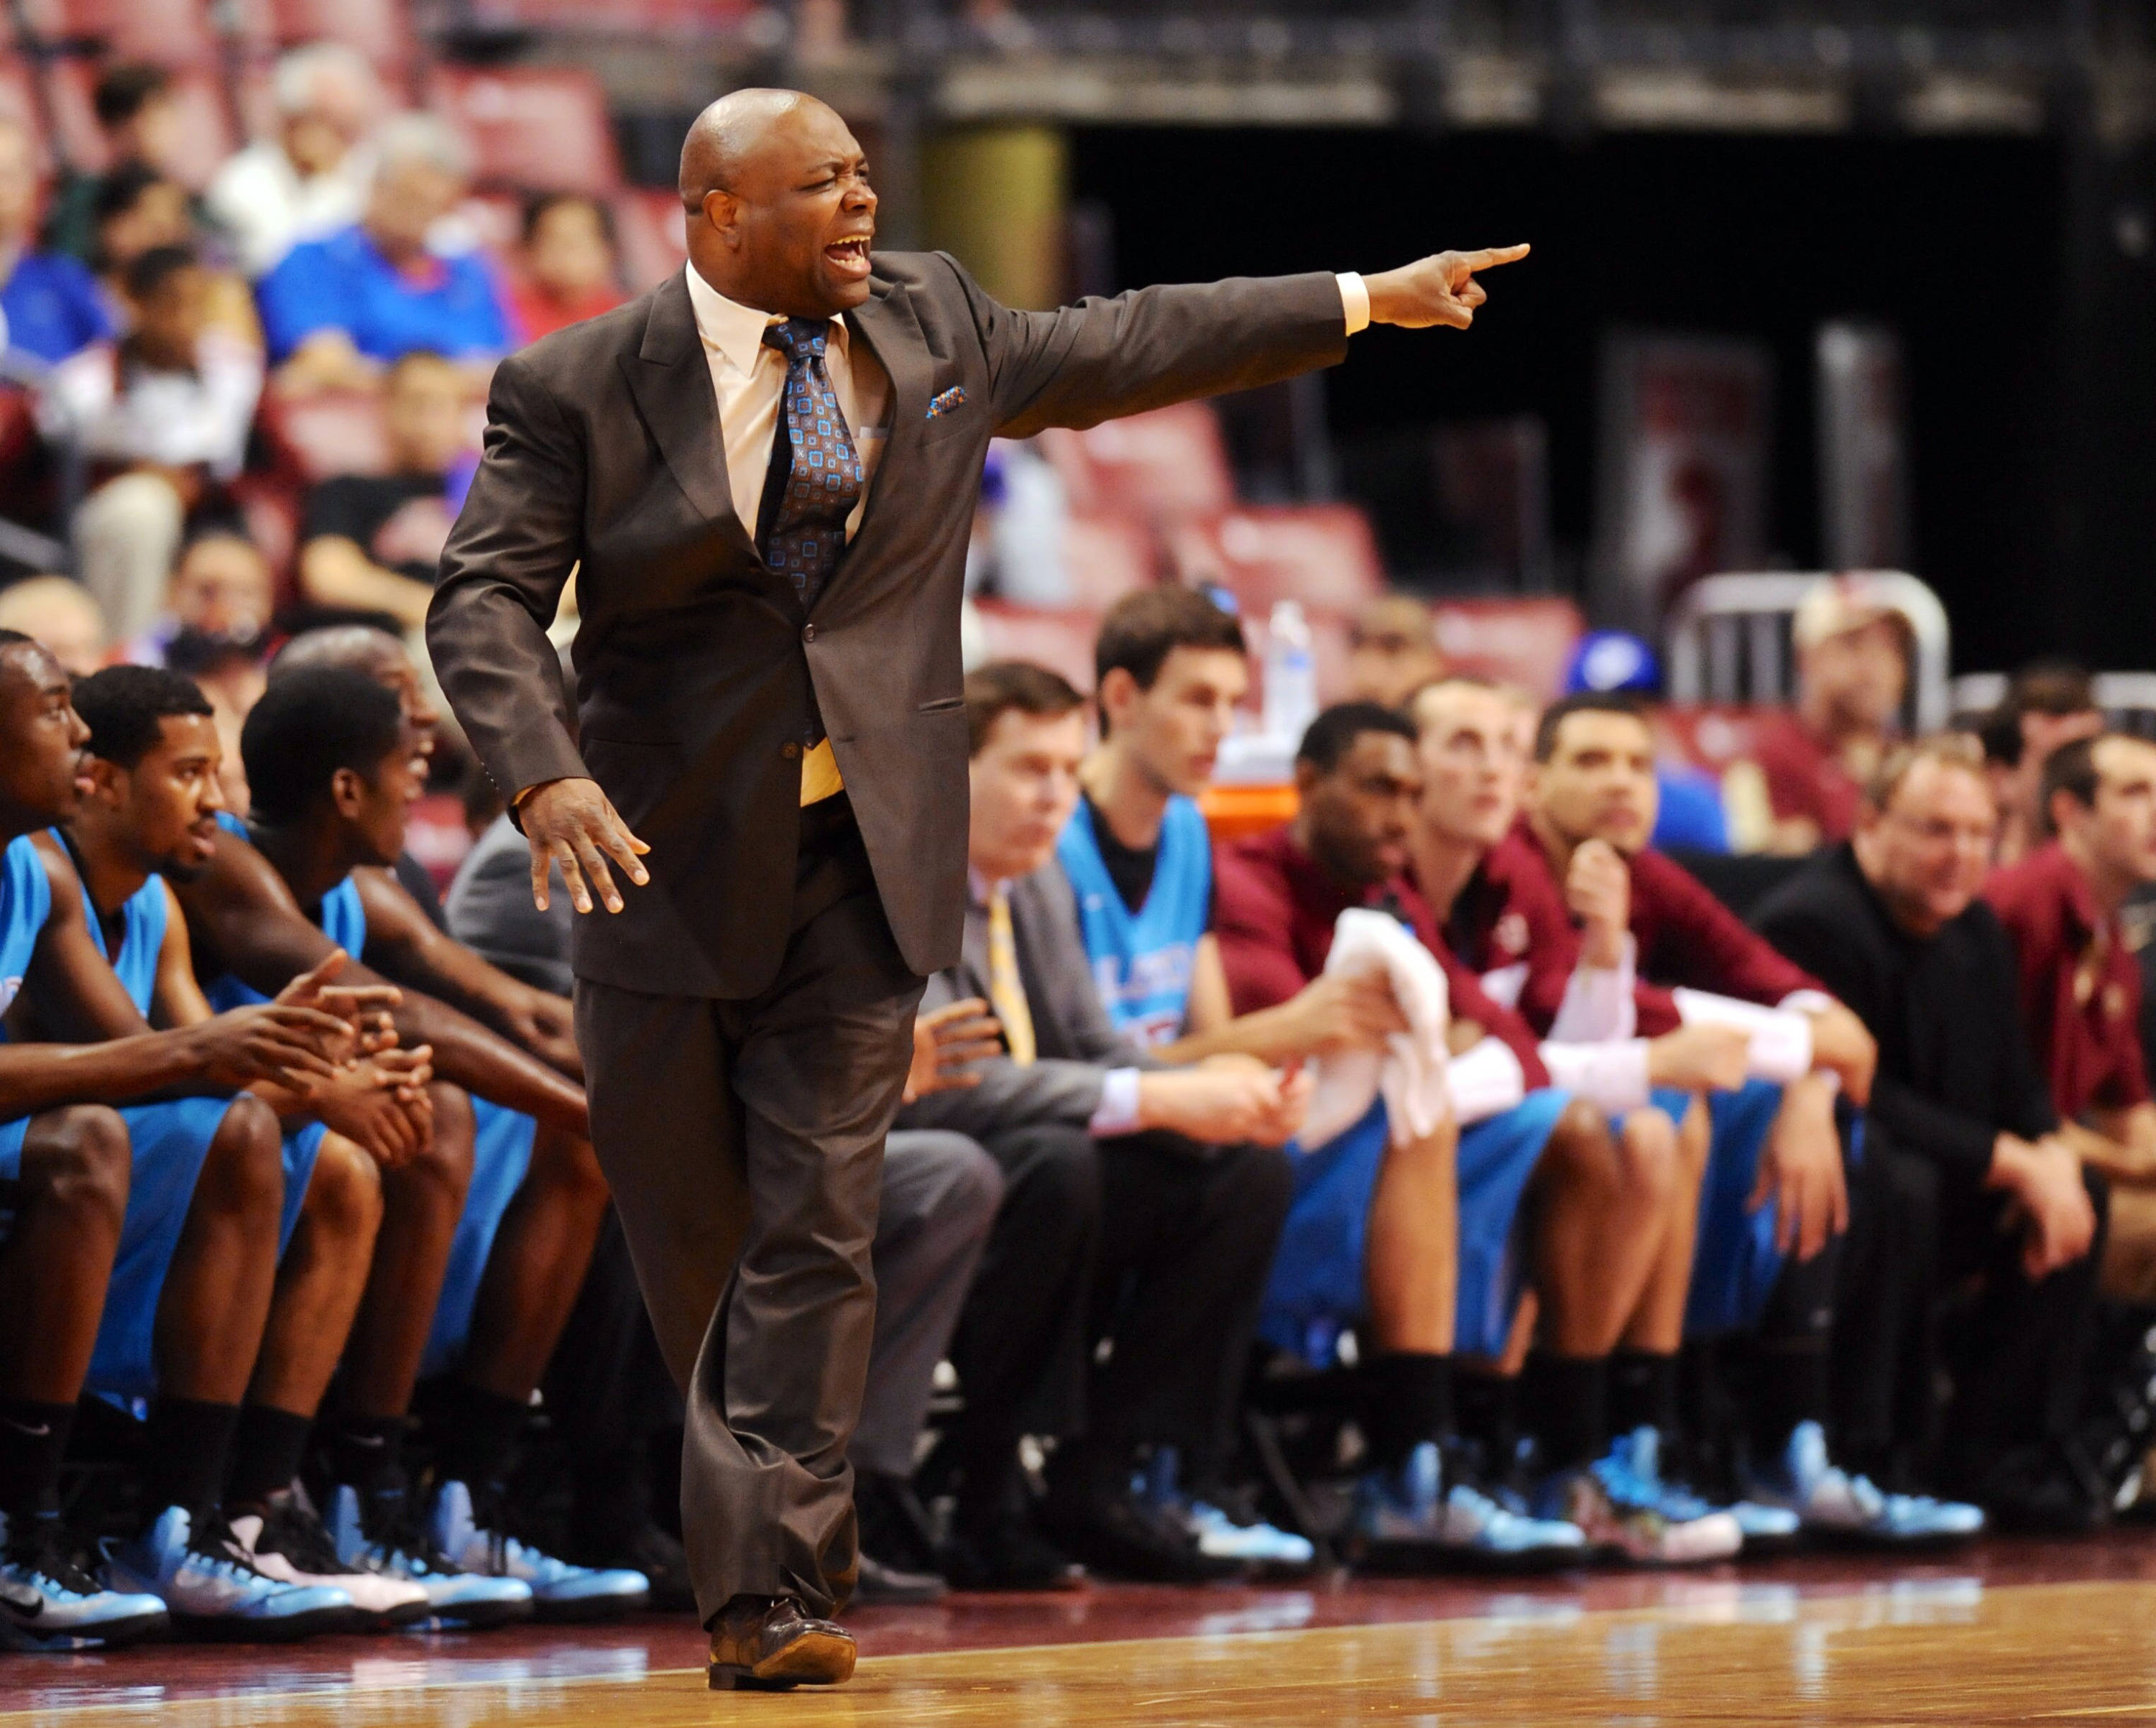 Dec 21, 2013; Sunrise, FL, USA; Florida State Seminoles head coach Leonard Hamilton reacts during the first half against the Massachusetts Minutemen at BB&T Center. Mandatory Credit: Steve Mitchell-USA TODAY Sports